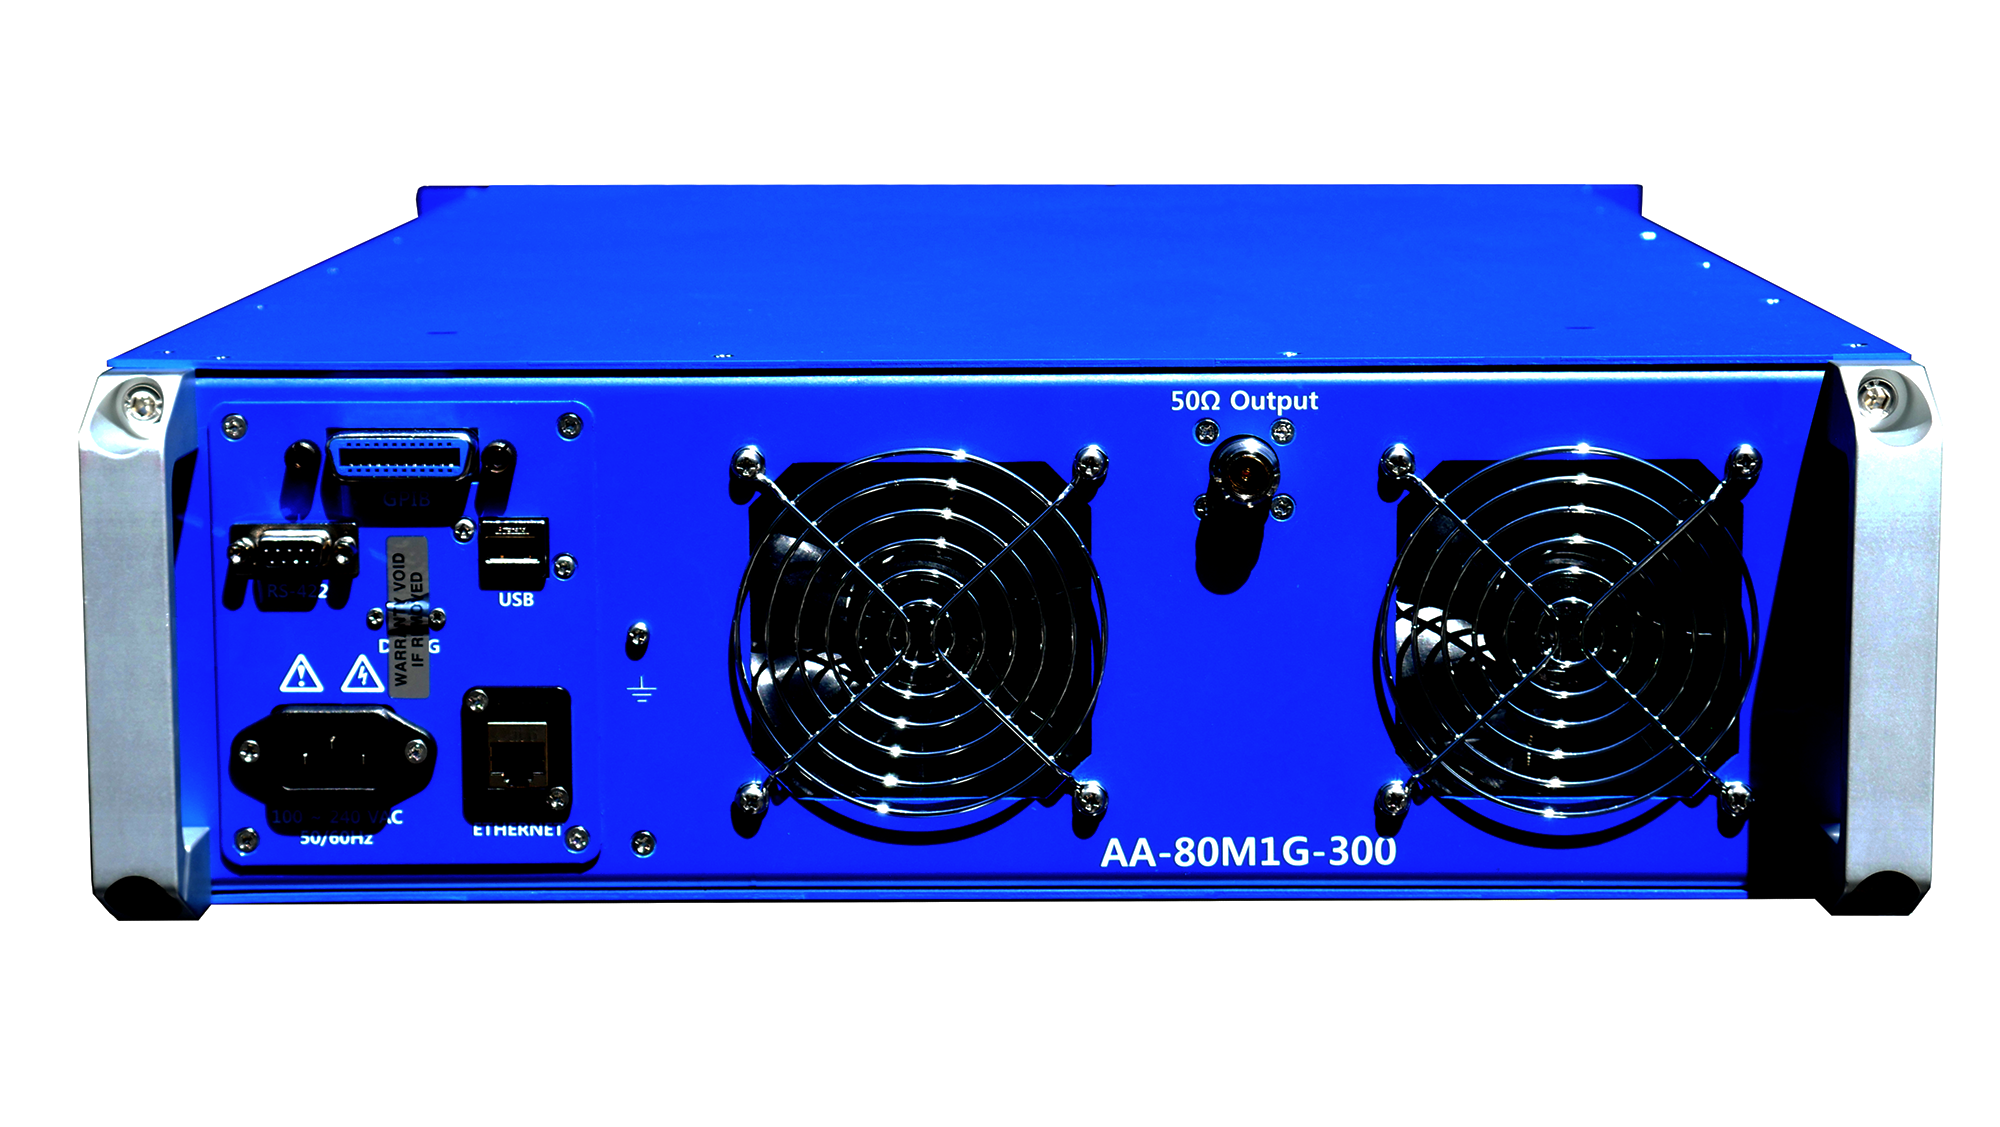 Advanced Amplifiers AA-80M1G-300 Solid State Amplifier | 80 - 1000 MHz, 300 W